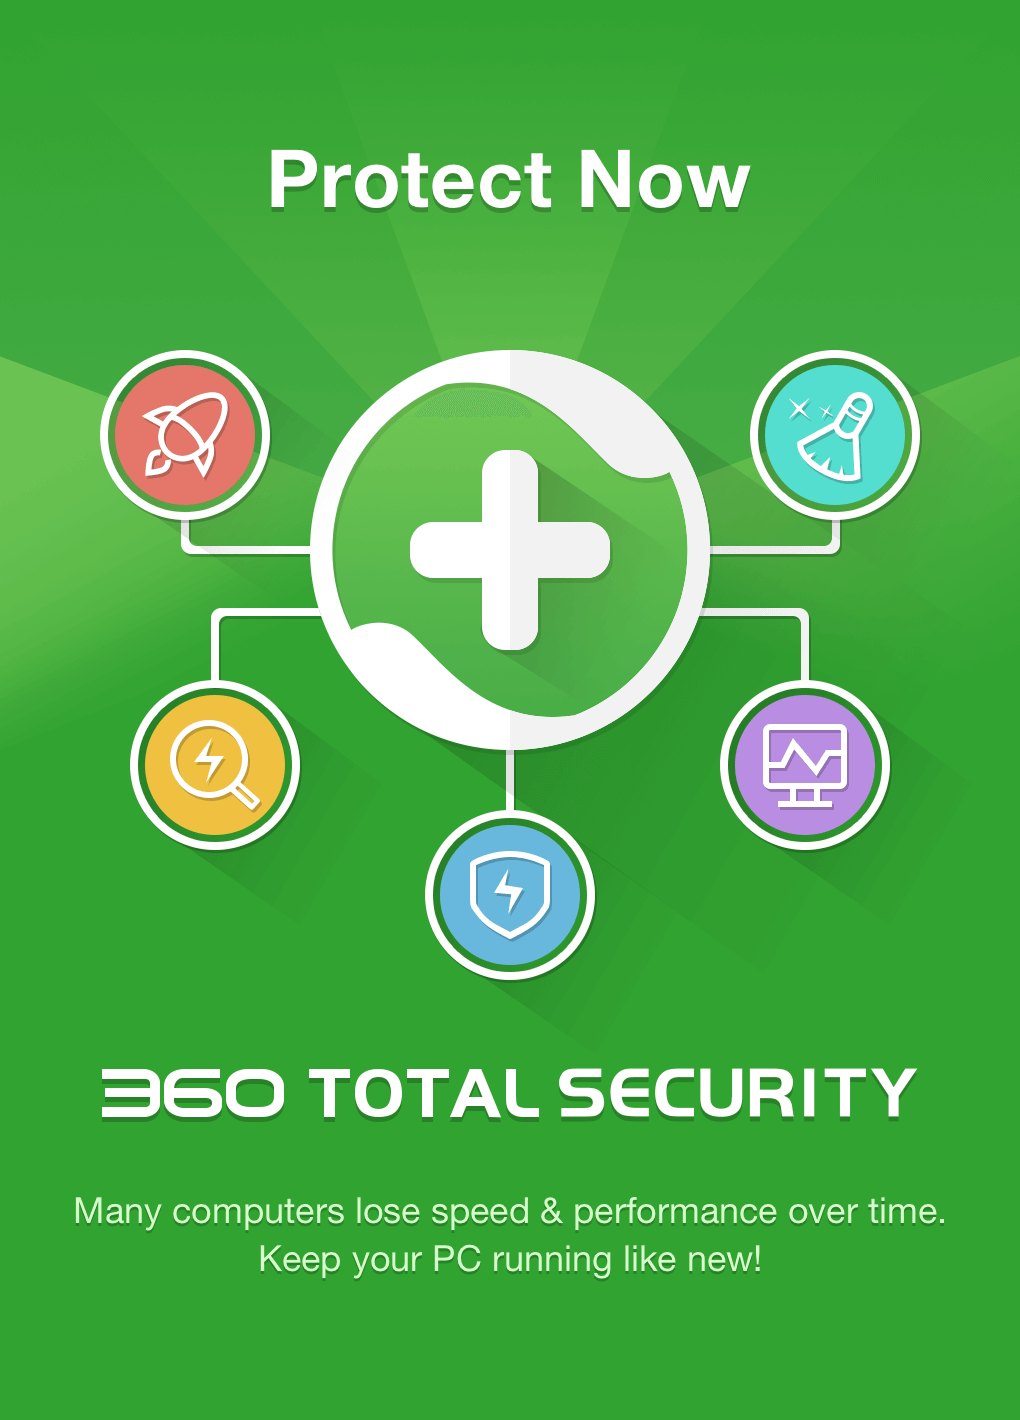 360 Security android